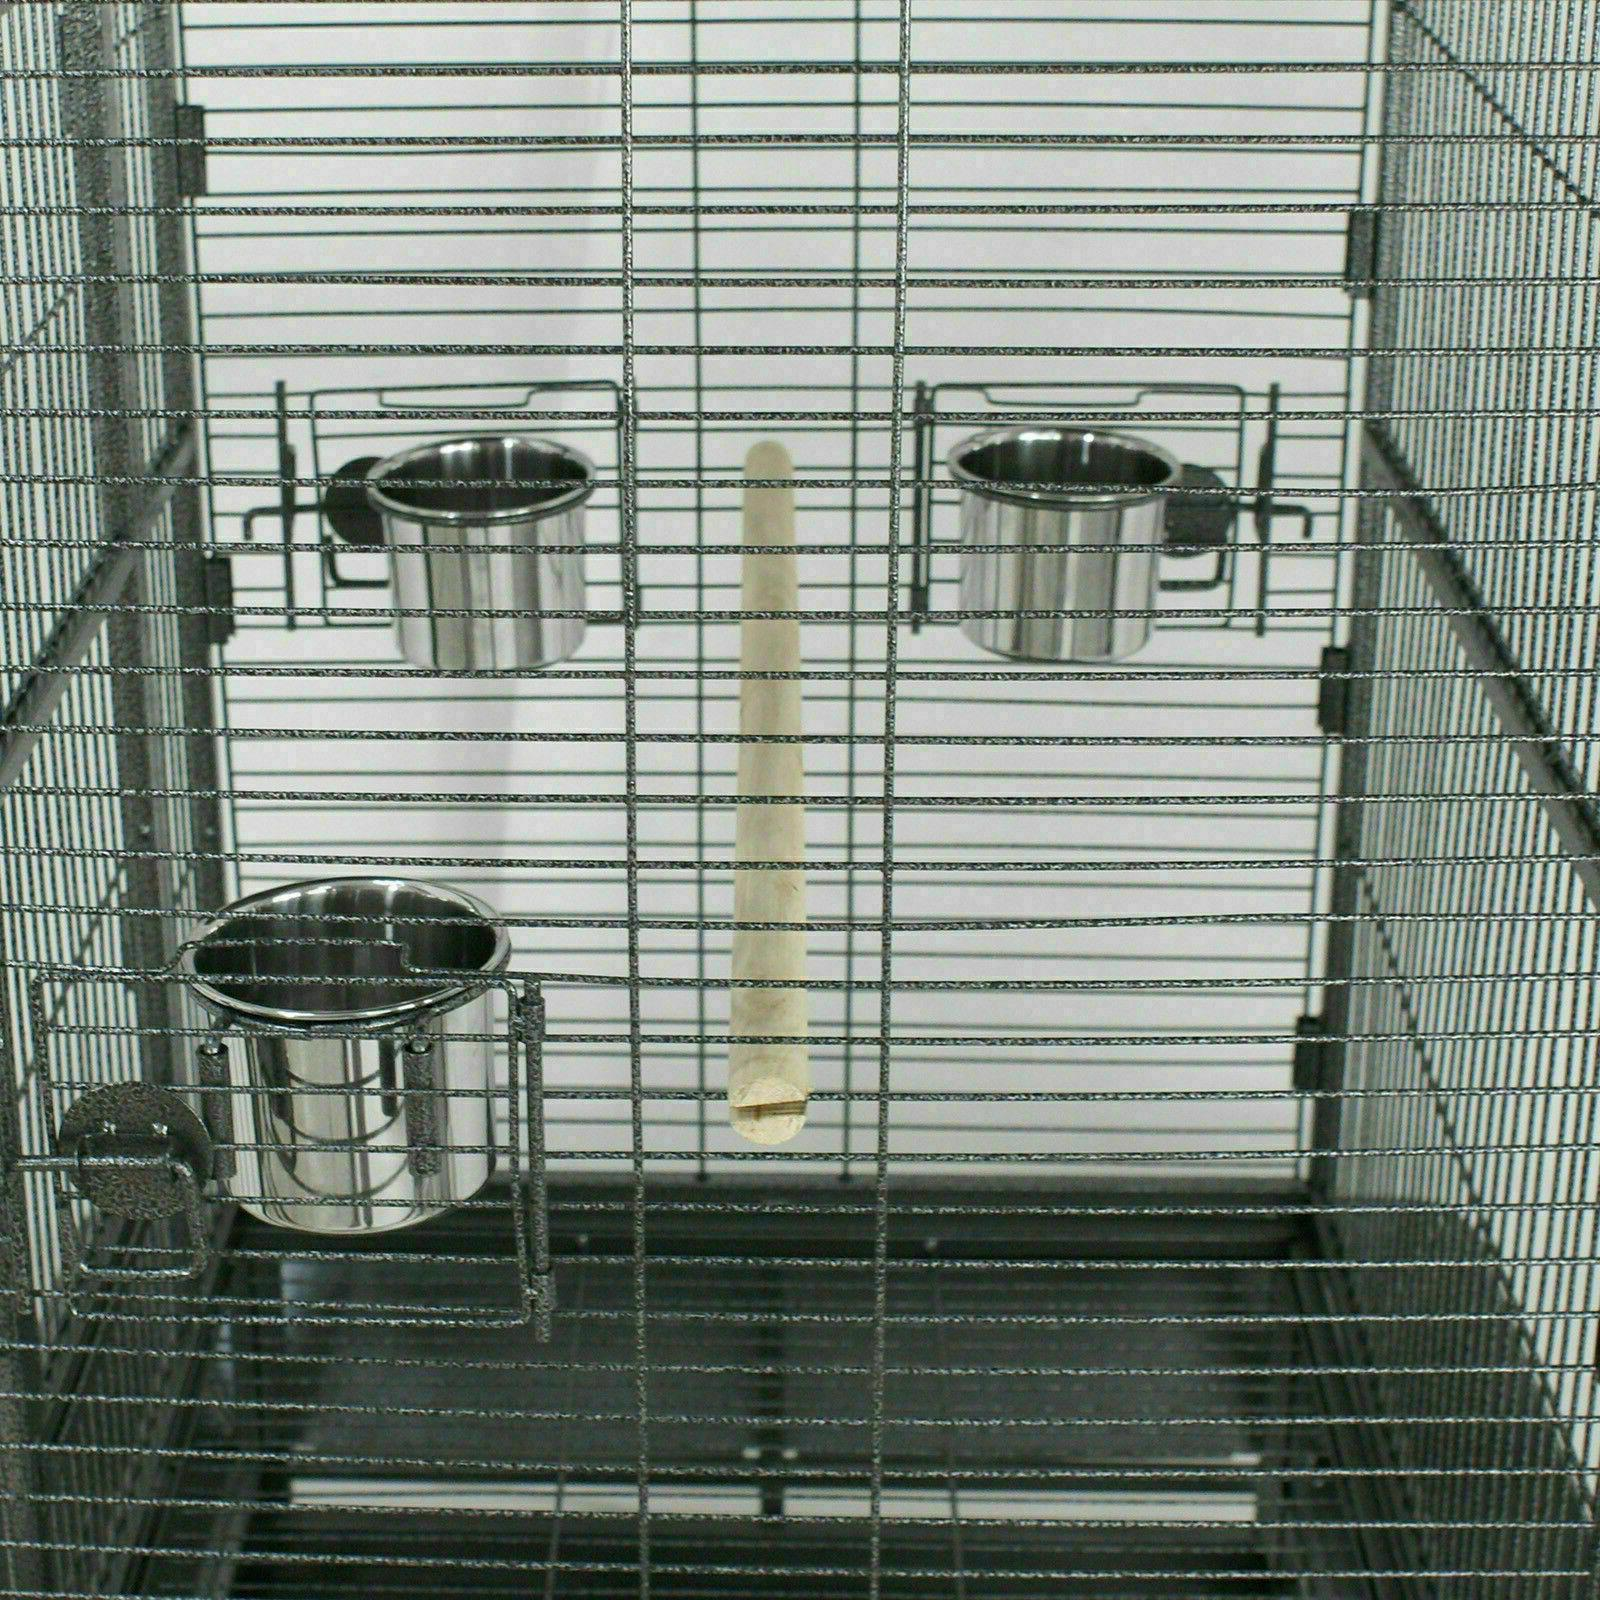 New Bird Parrot Cage Chinchilla Cockatiel Conure Large W/Sta